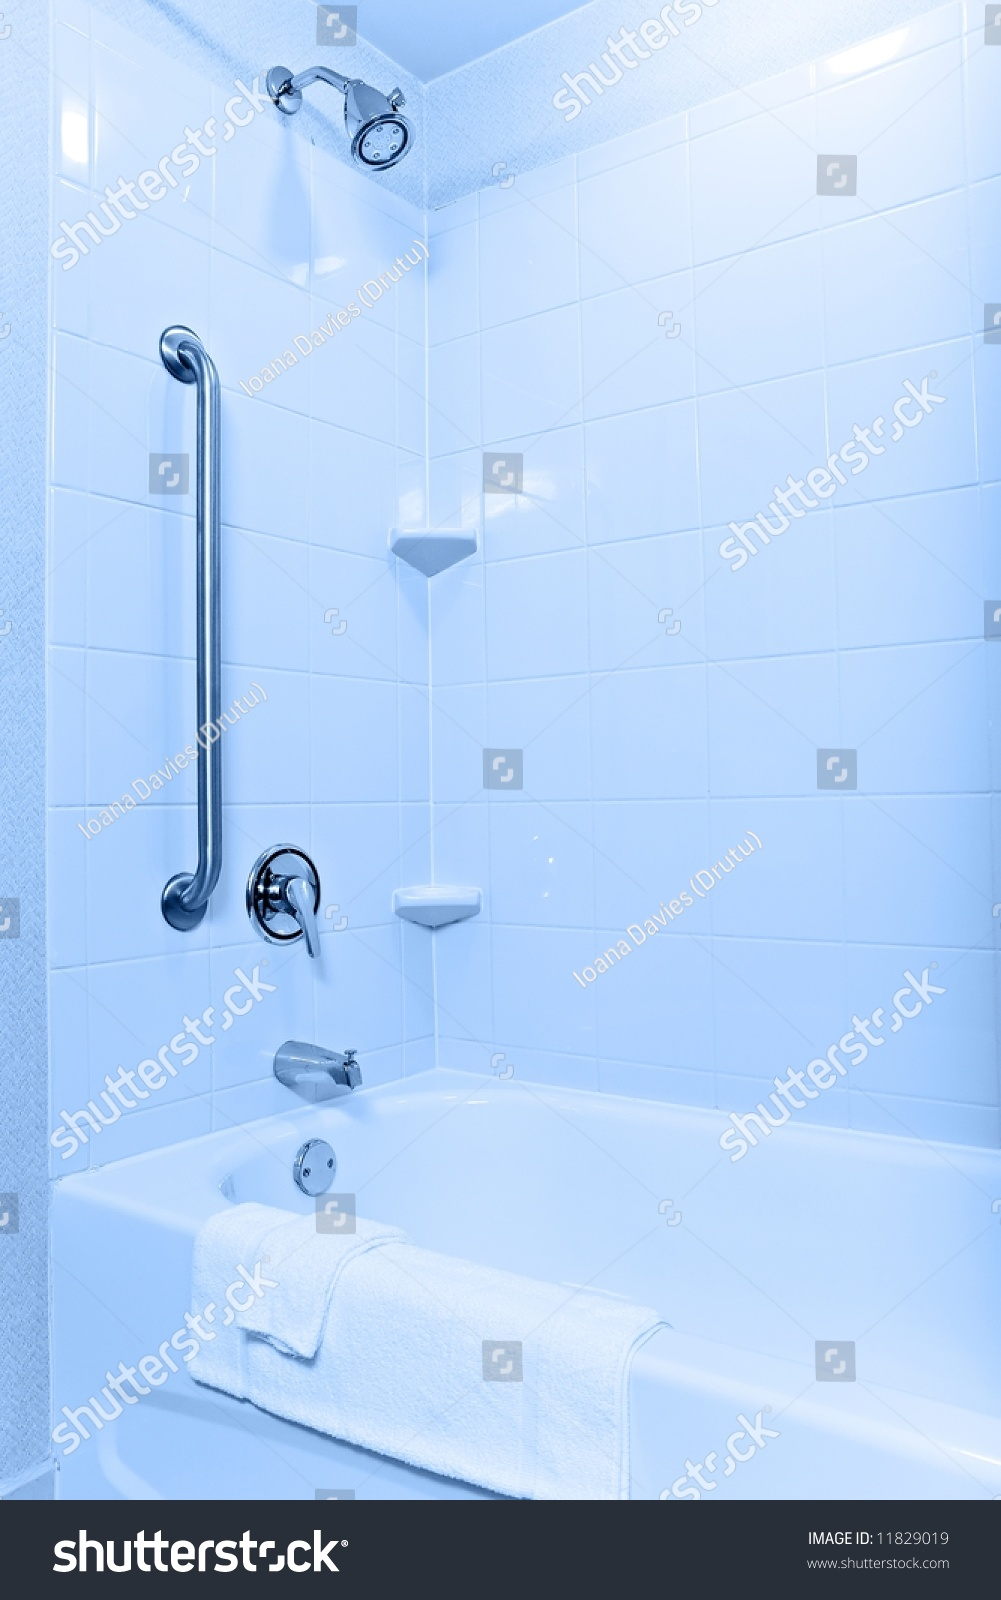 Handicapped Senioraccessible Tub Shower Modern Apartment Stock Photo ...